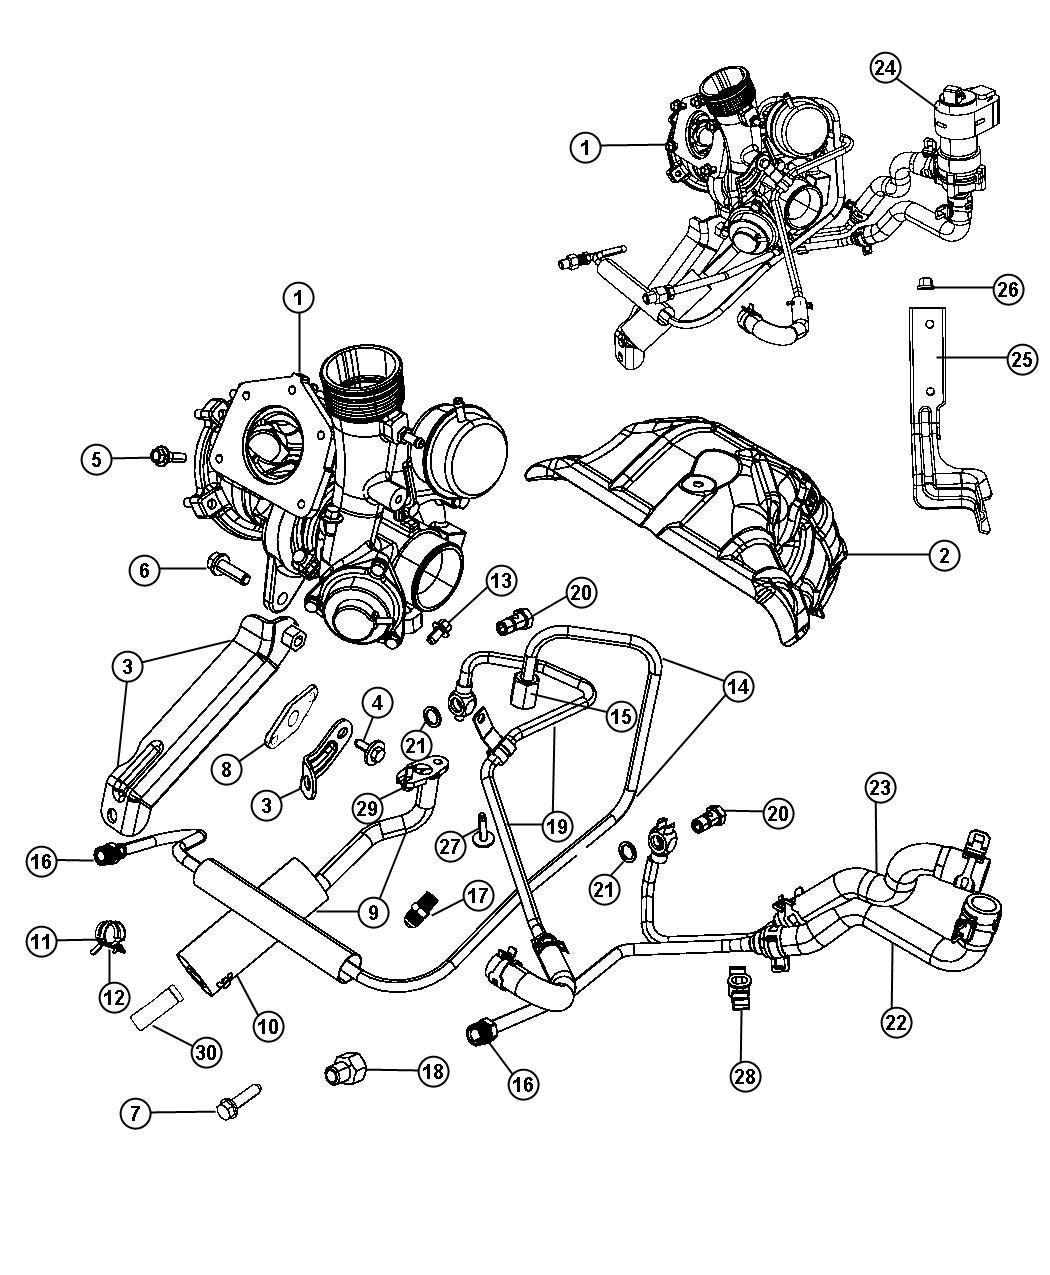 2008 dodge caliber parts diagram